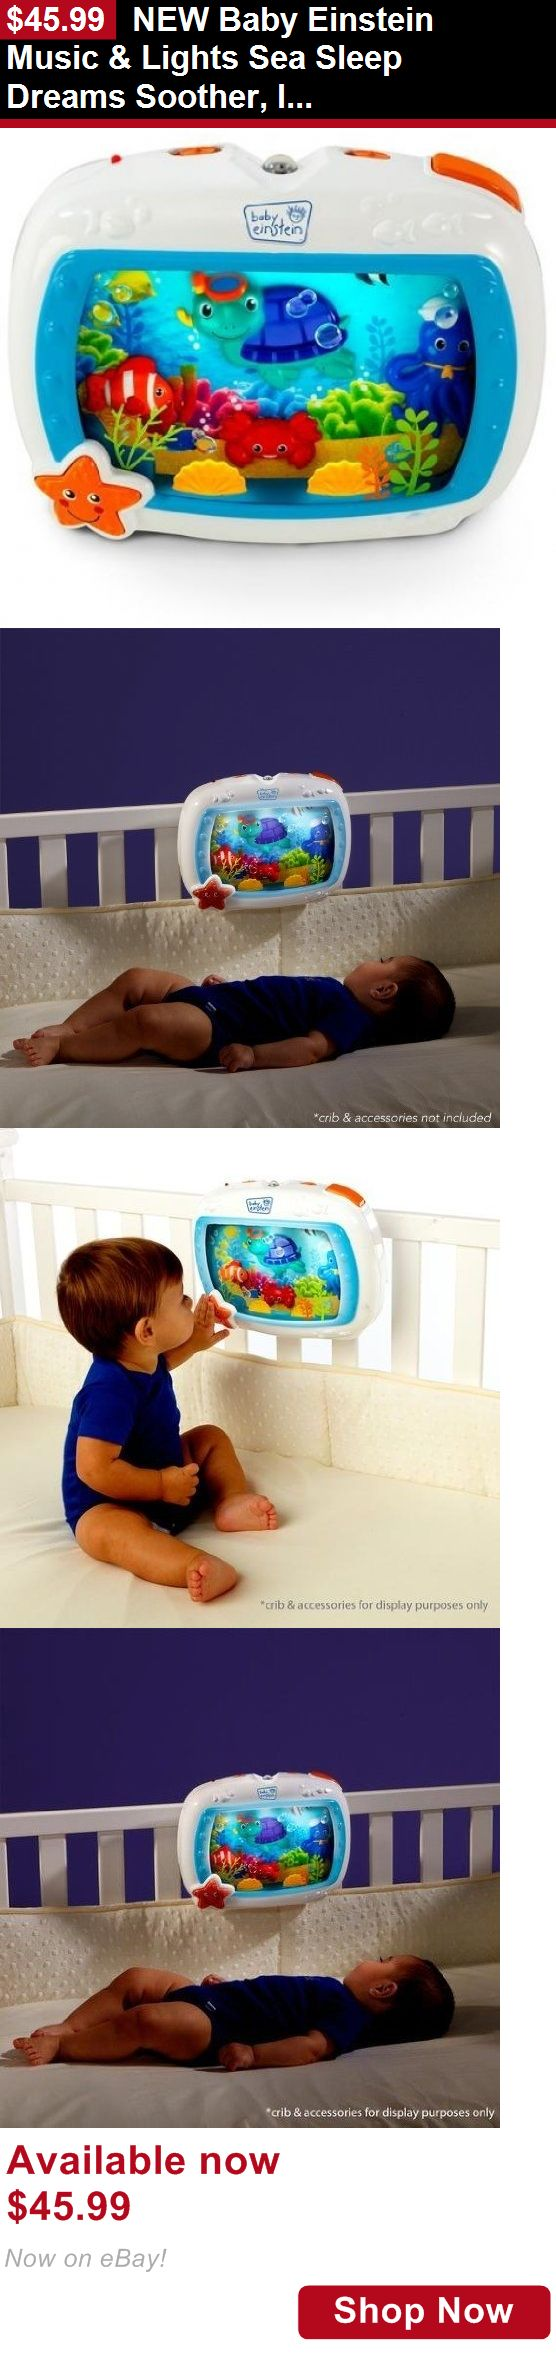 Crib Toys: New Baby Einstein Music And Lights Sea Sleep Dreams Soother, Infant Crib Toy BUY IT NOW ONLY: $45.99